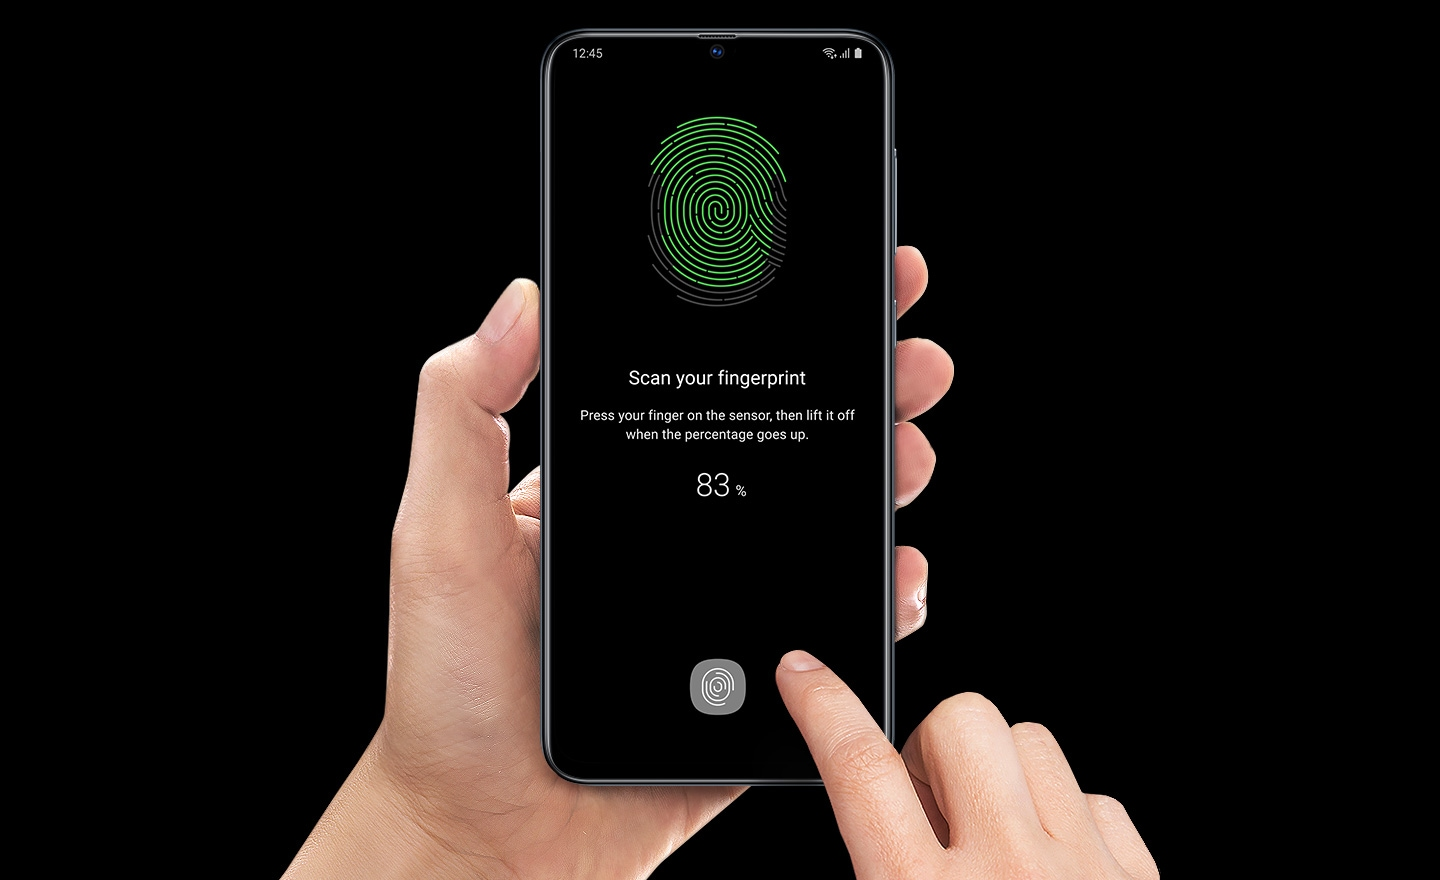 https://images.samsung.com/is/image/samsung/uk-feature-your-fingerprint-is-the-key-157497163?$FB_TYPE_A_JPG$